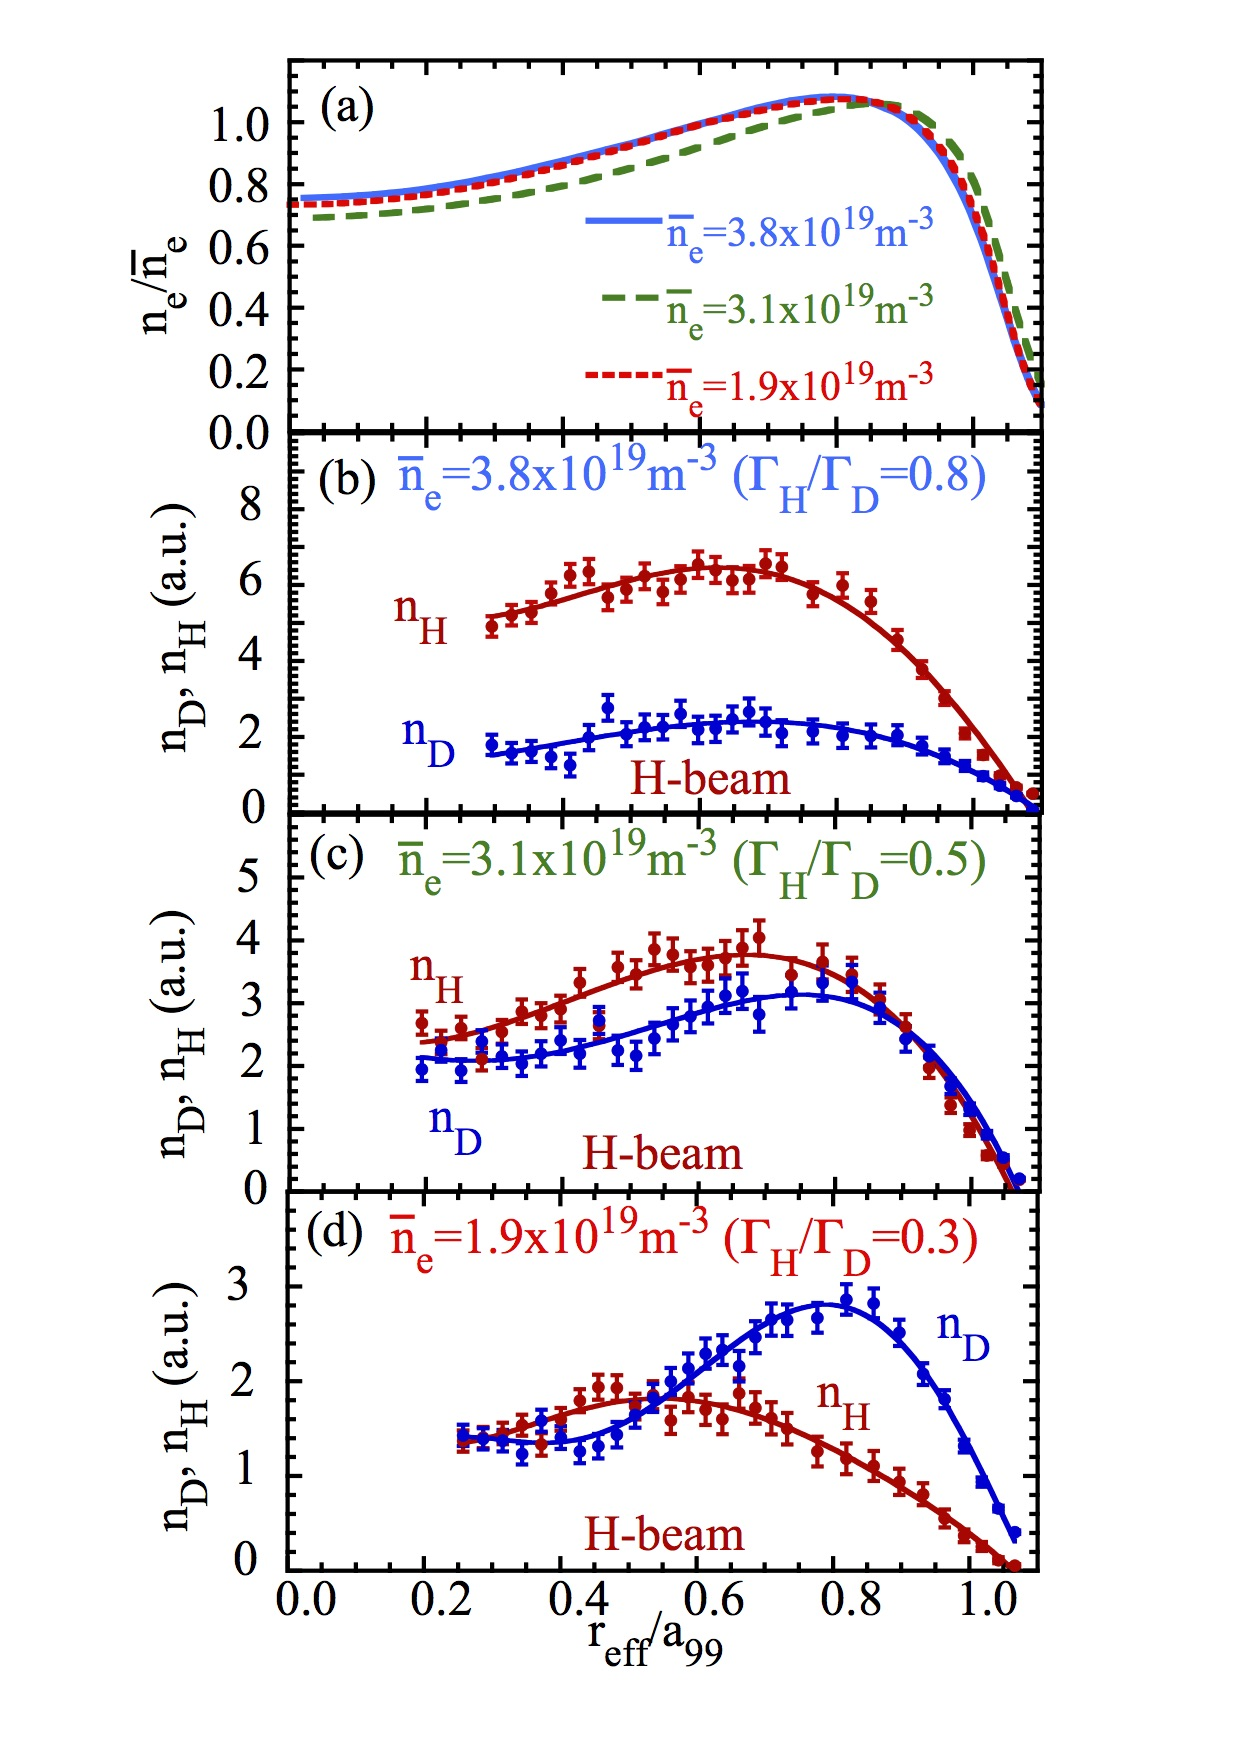 (a) Radial profiles of electron density and (b)(c)(d) radial profiles of H and D density in the plasma with H-beam fueling for the different line-averaged density and wall recycling isotope ratio of (b) 3.8$\times$10 $^{19}$m$^{-3}$ ($\Gamma_H/\Gamma_D$ = 0.8), (c), 3.1$\times$10$^{19}$m$^{-3}$ ($\Gamma_H/\Gamma_D$ = 0.5), and (d) 1.9$\times$10$^{19}$m$^{-3}$ ($\Gamma_H/\Gamma_D$ = 0.3).